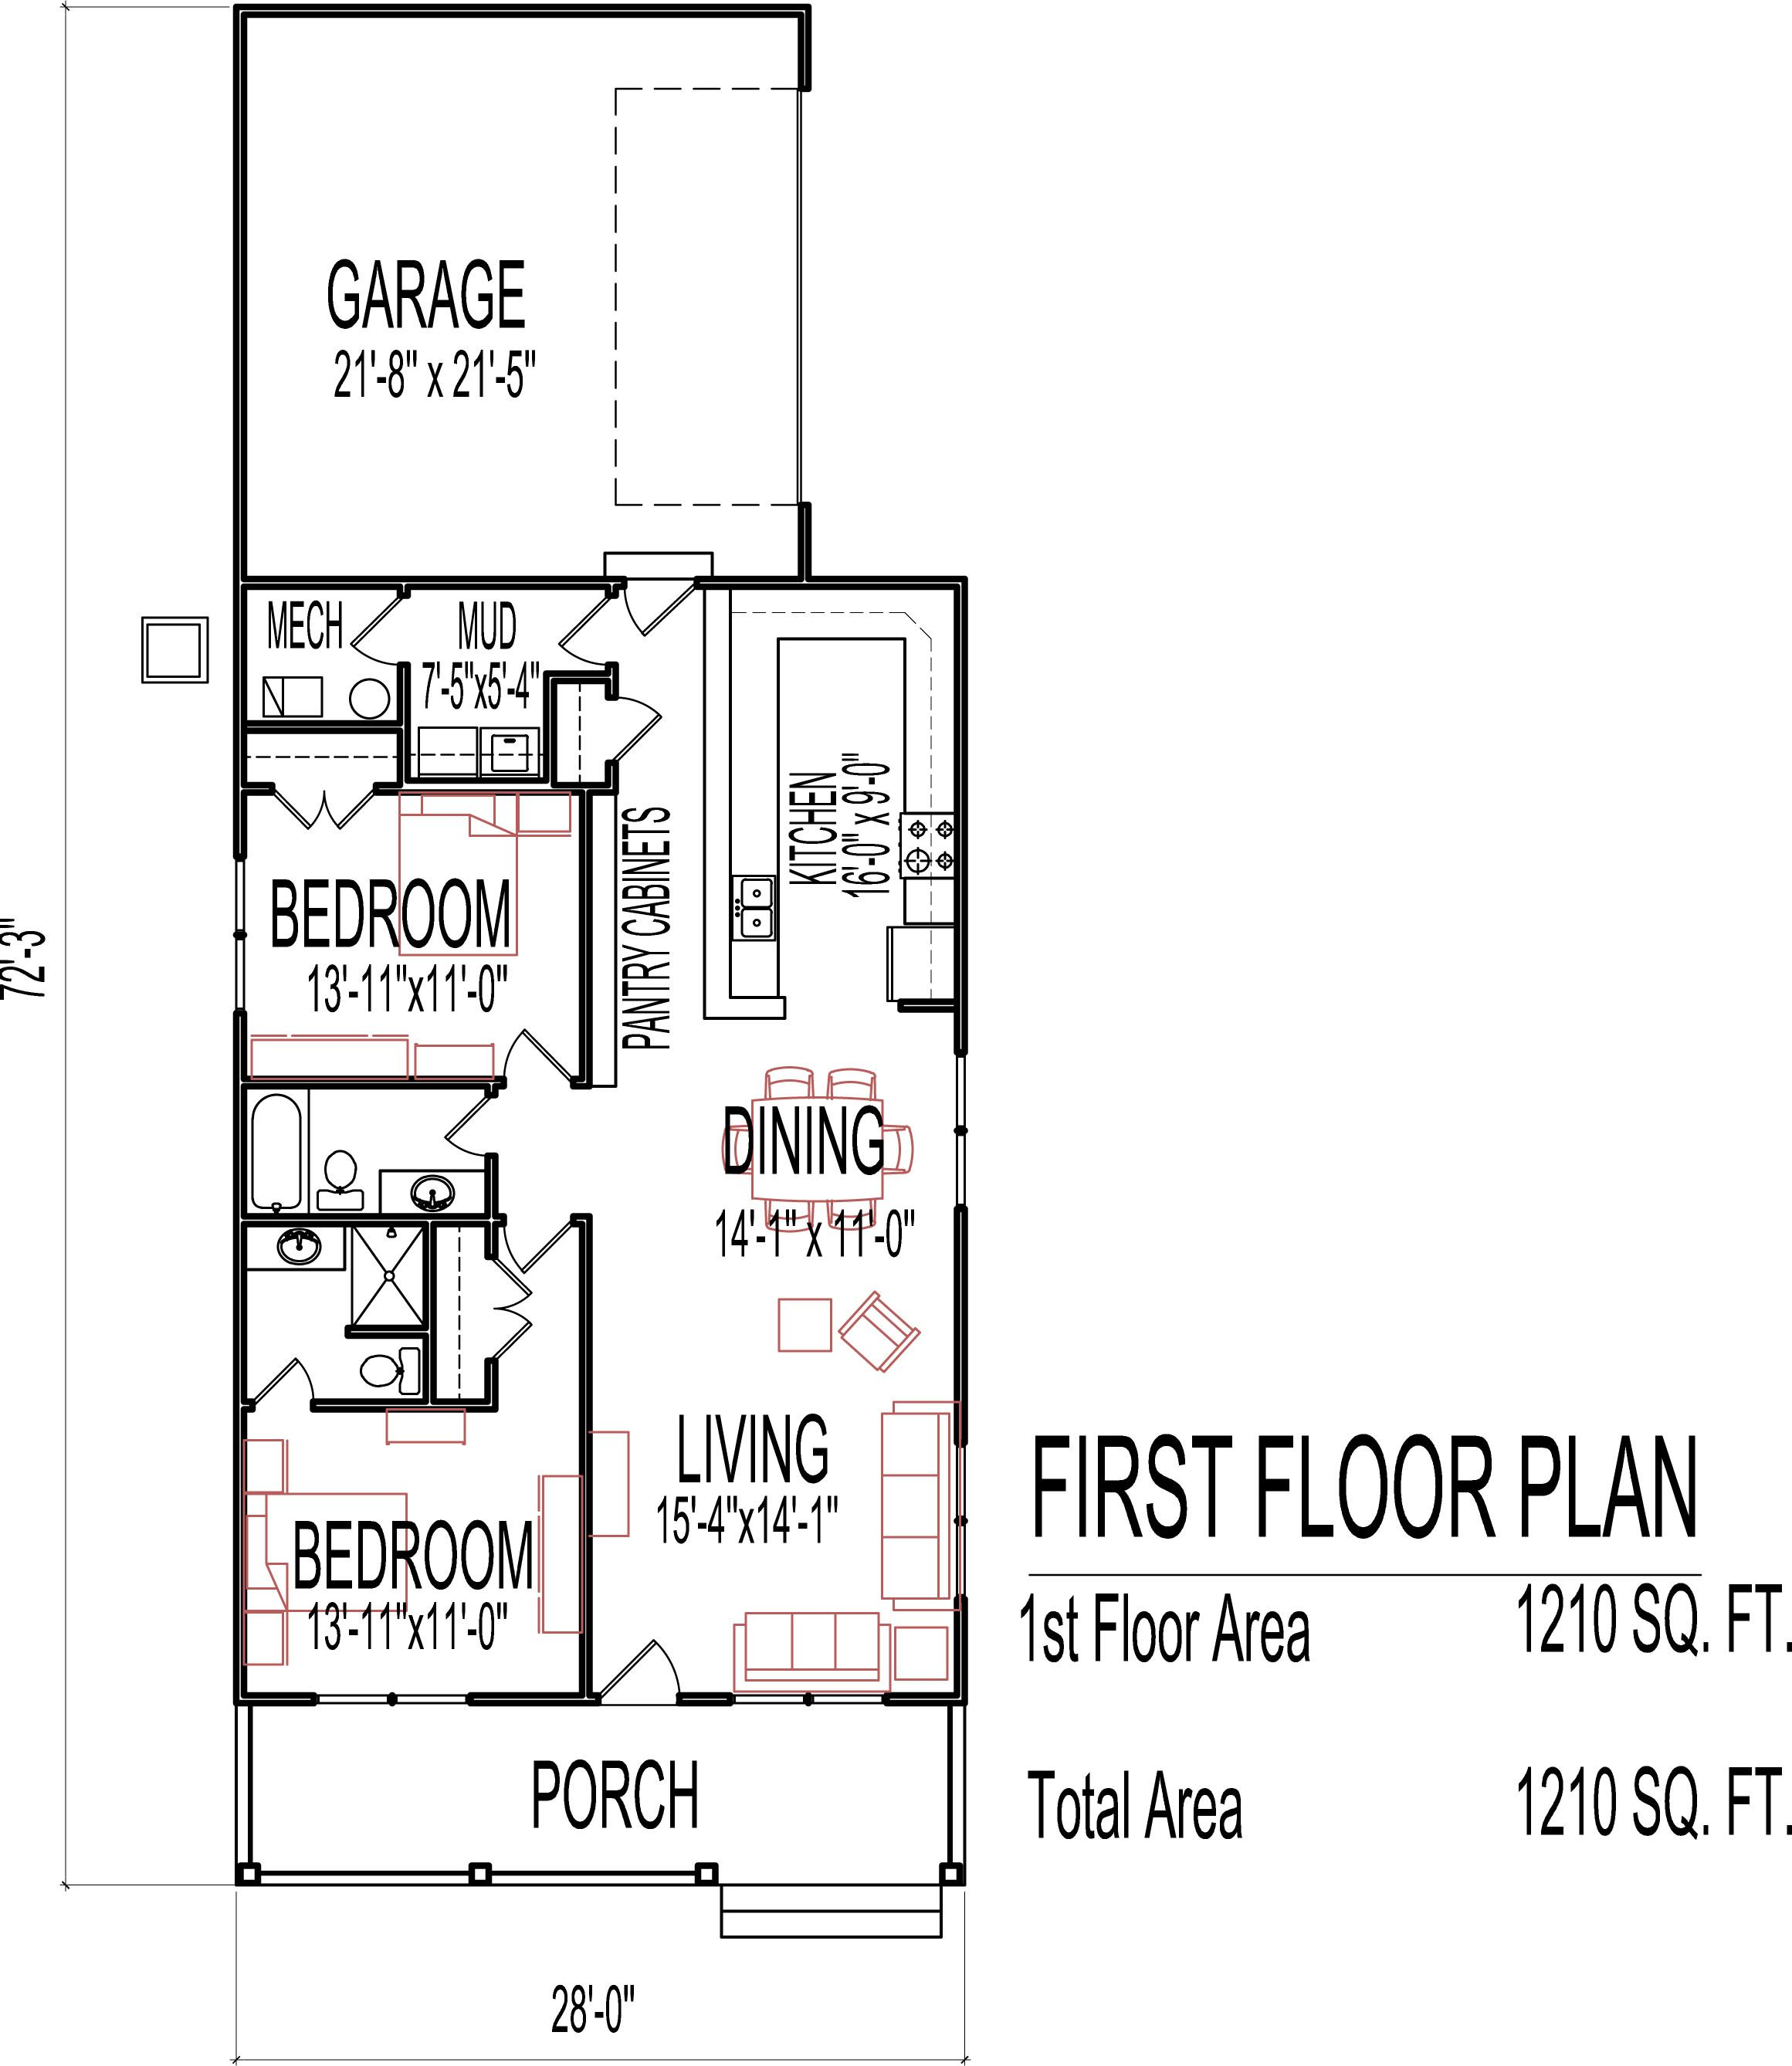 Small low cost economical 2 bedroom 2 bath 1200 sq ft for Single story home plans